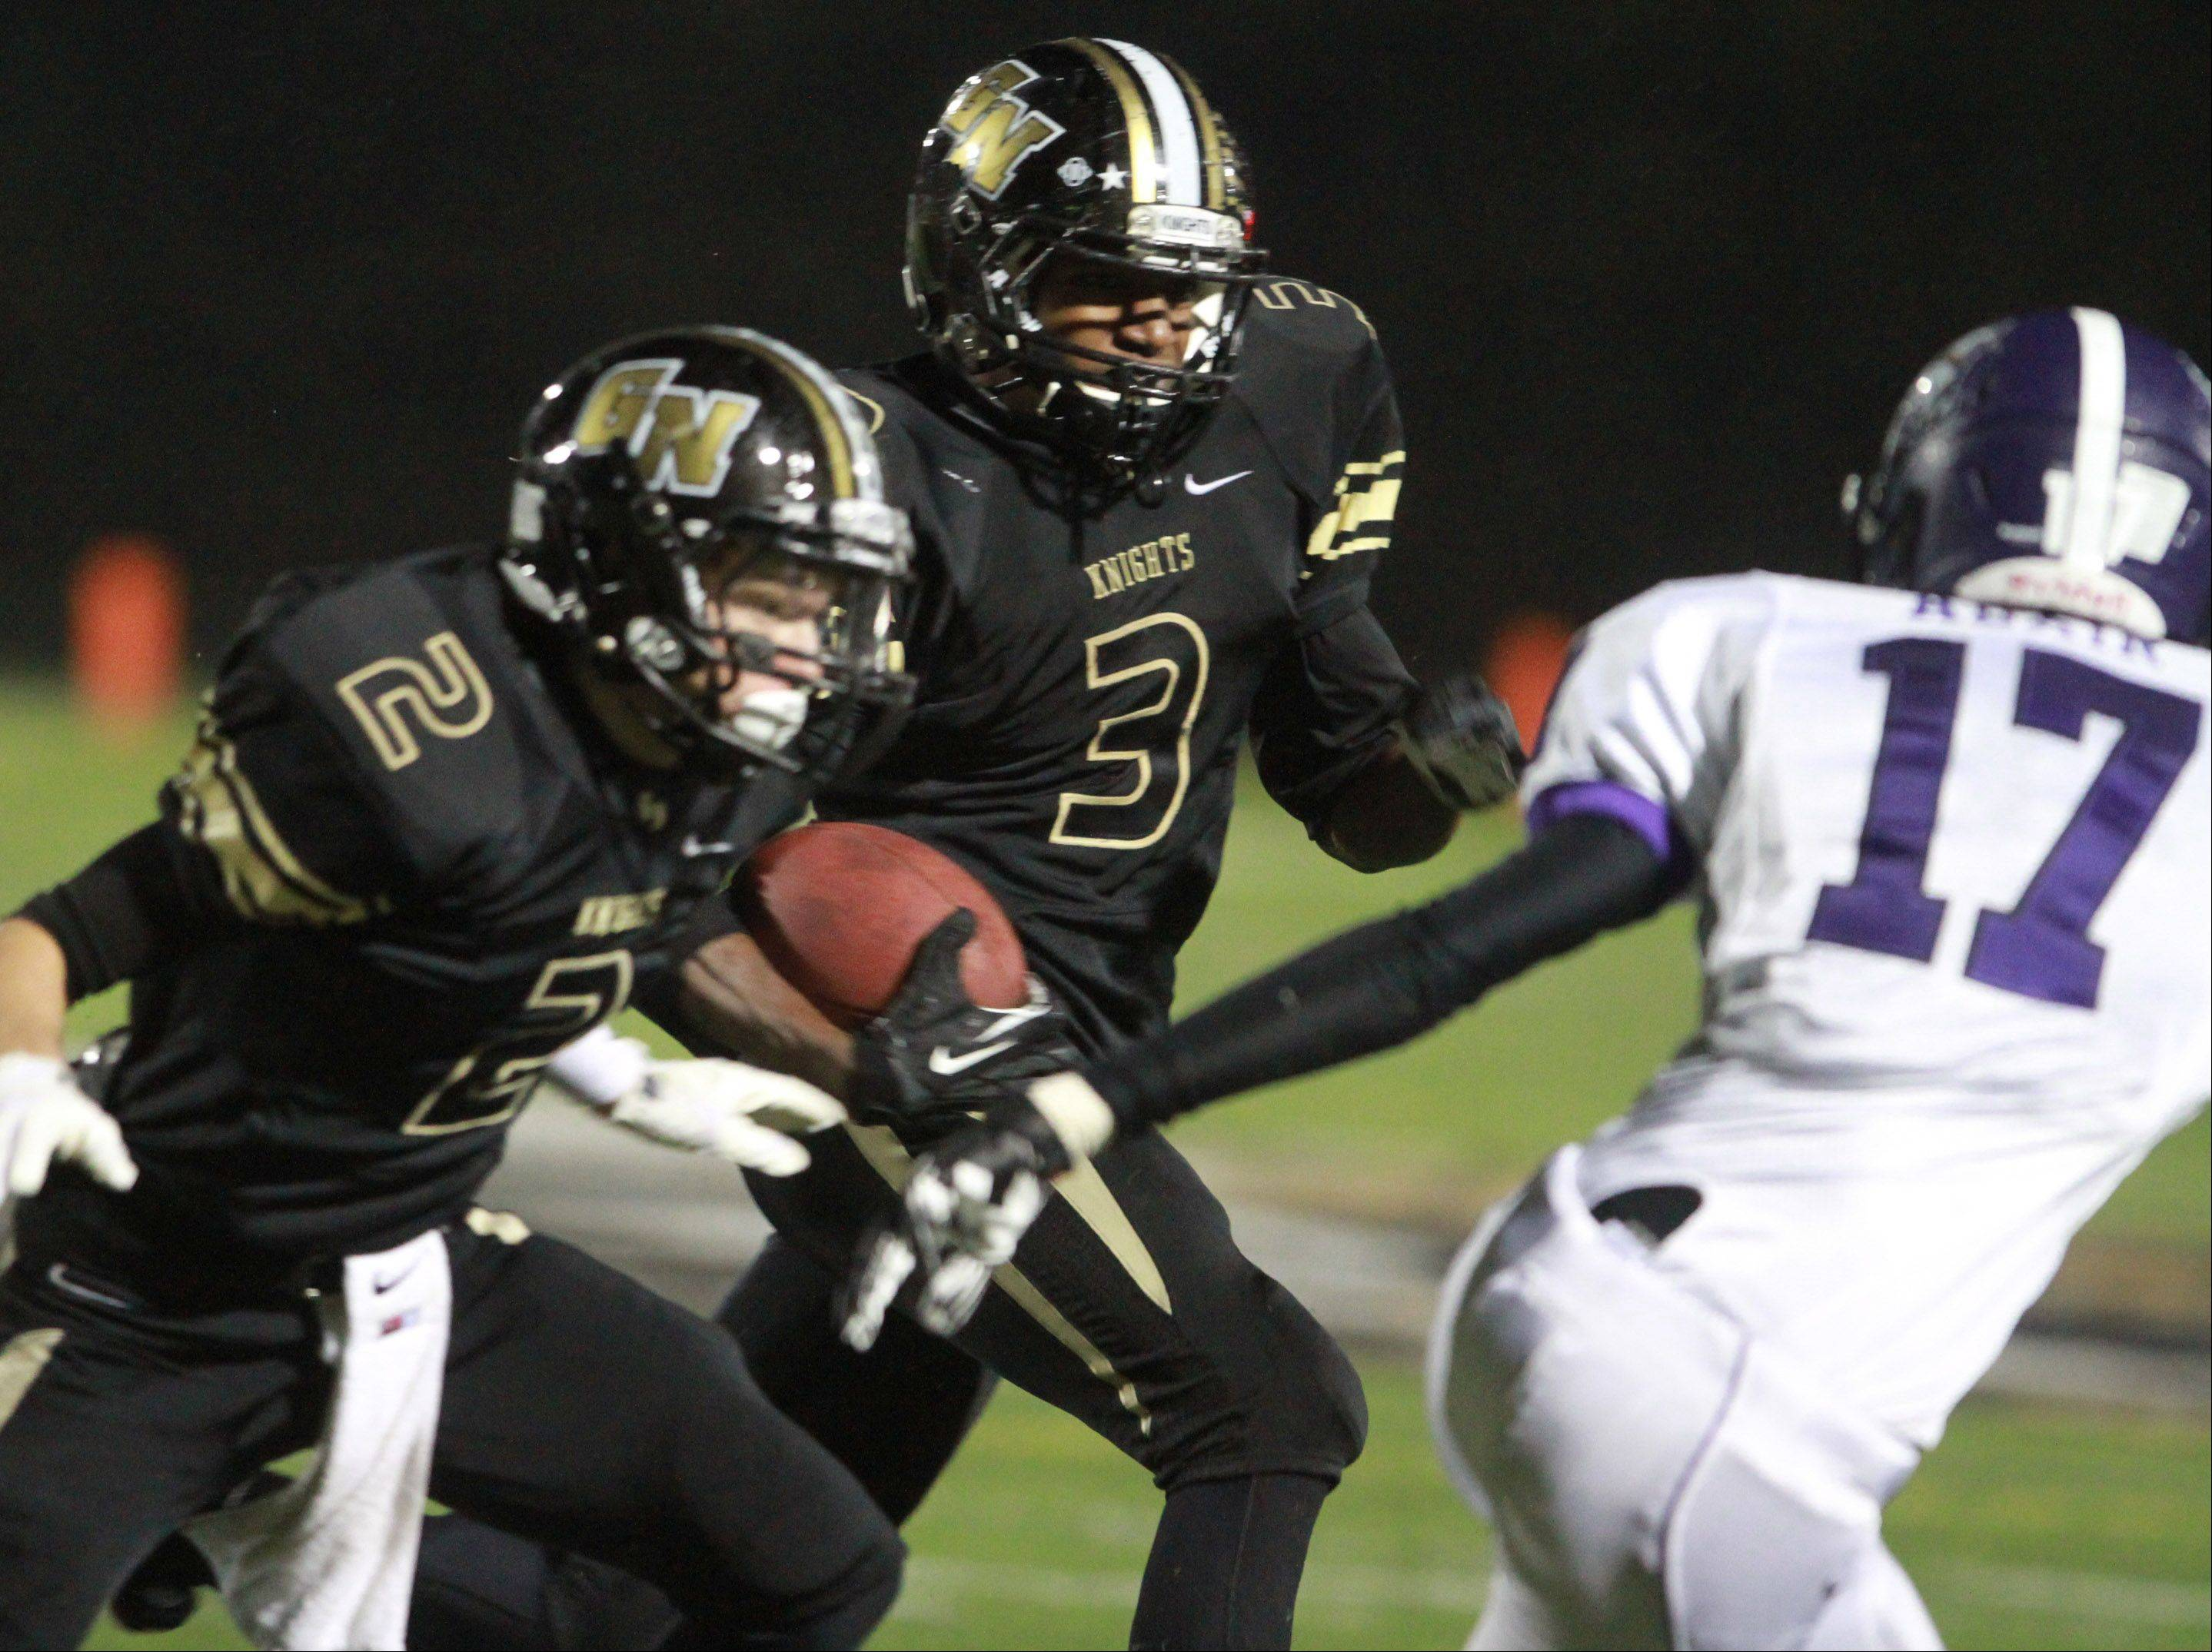 Grayslake North�s Titus Booker looks for running room as Dylan Foster (2) looks to block a defender against Rolling Meadows last Friday night.